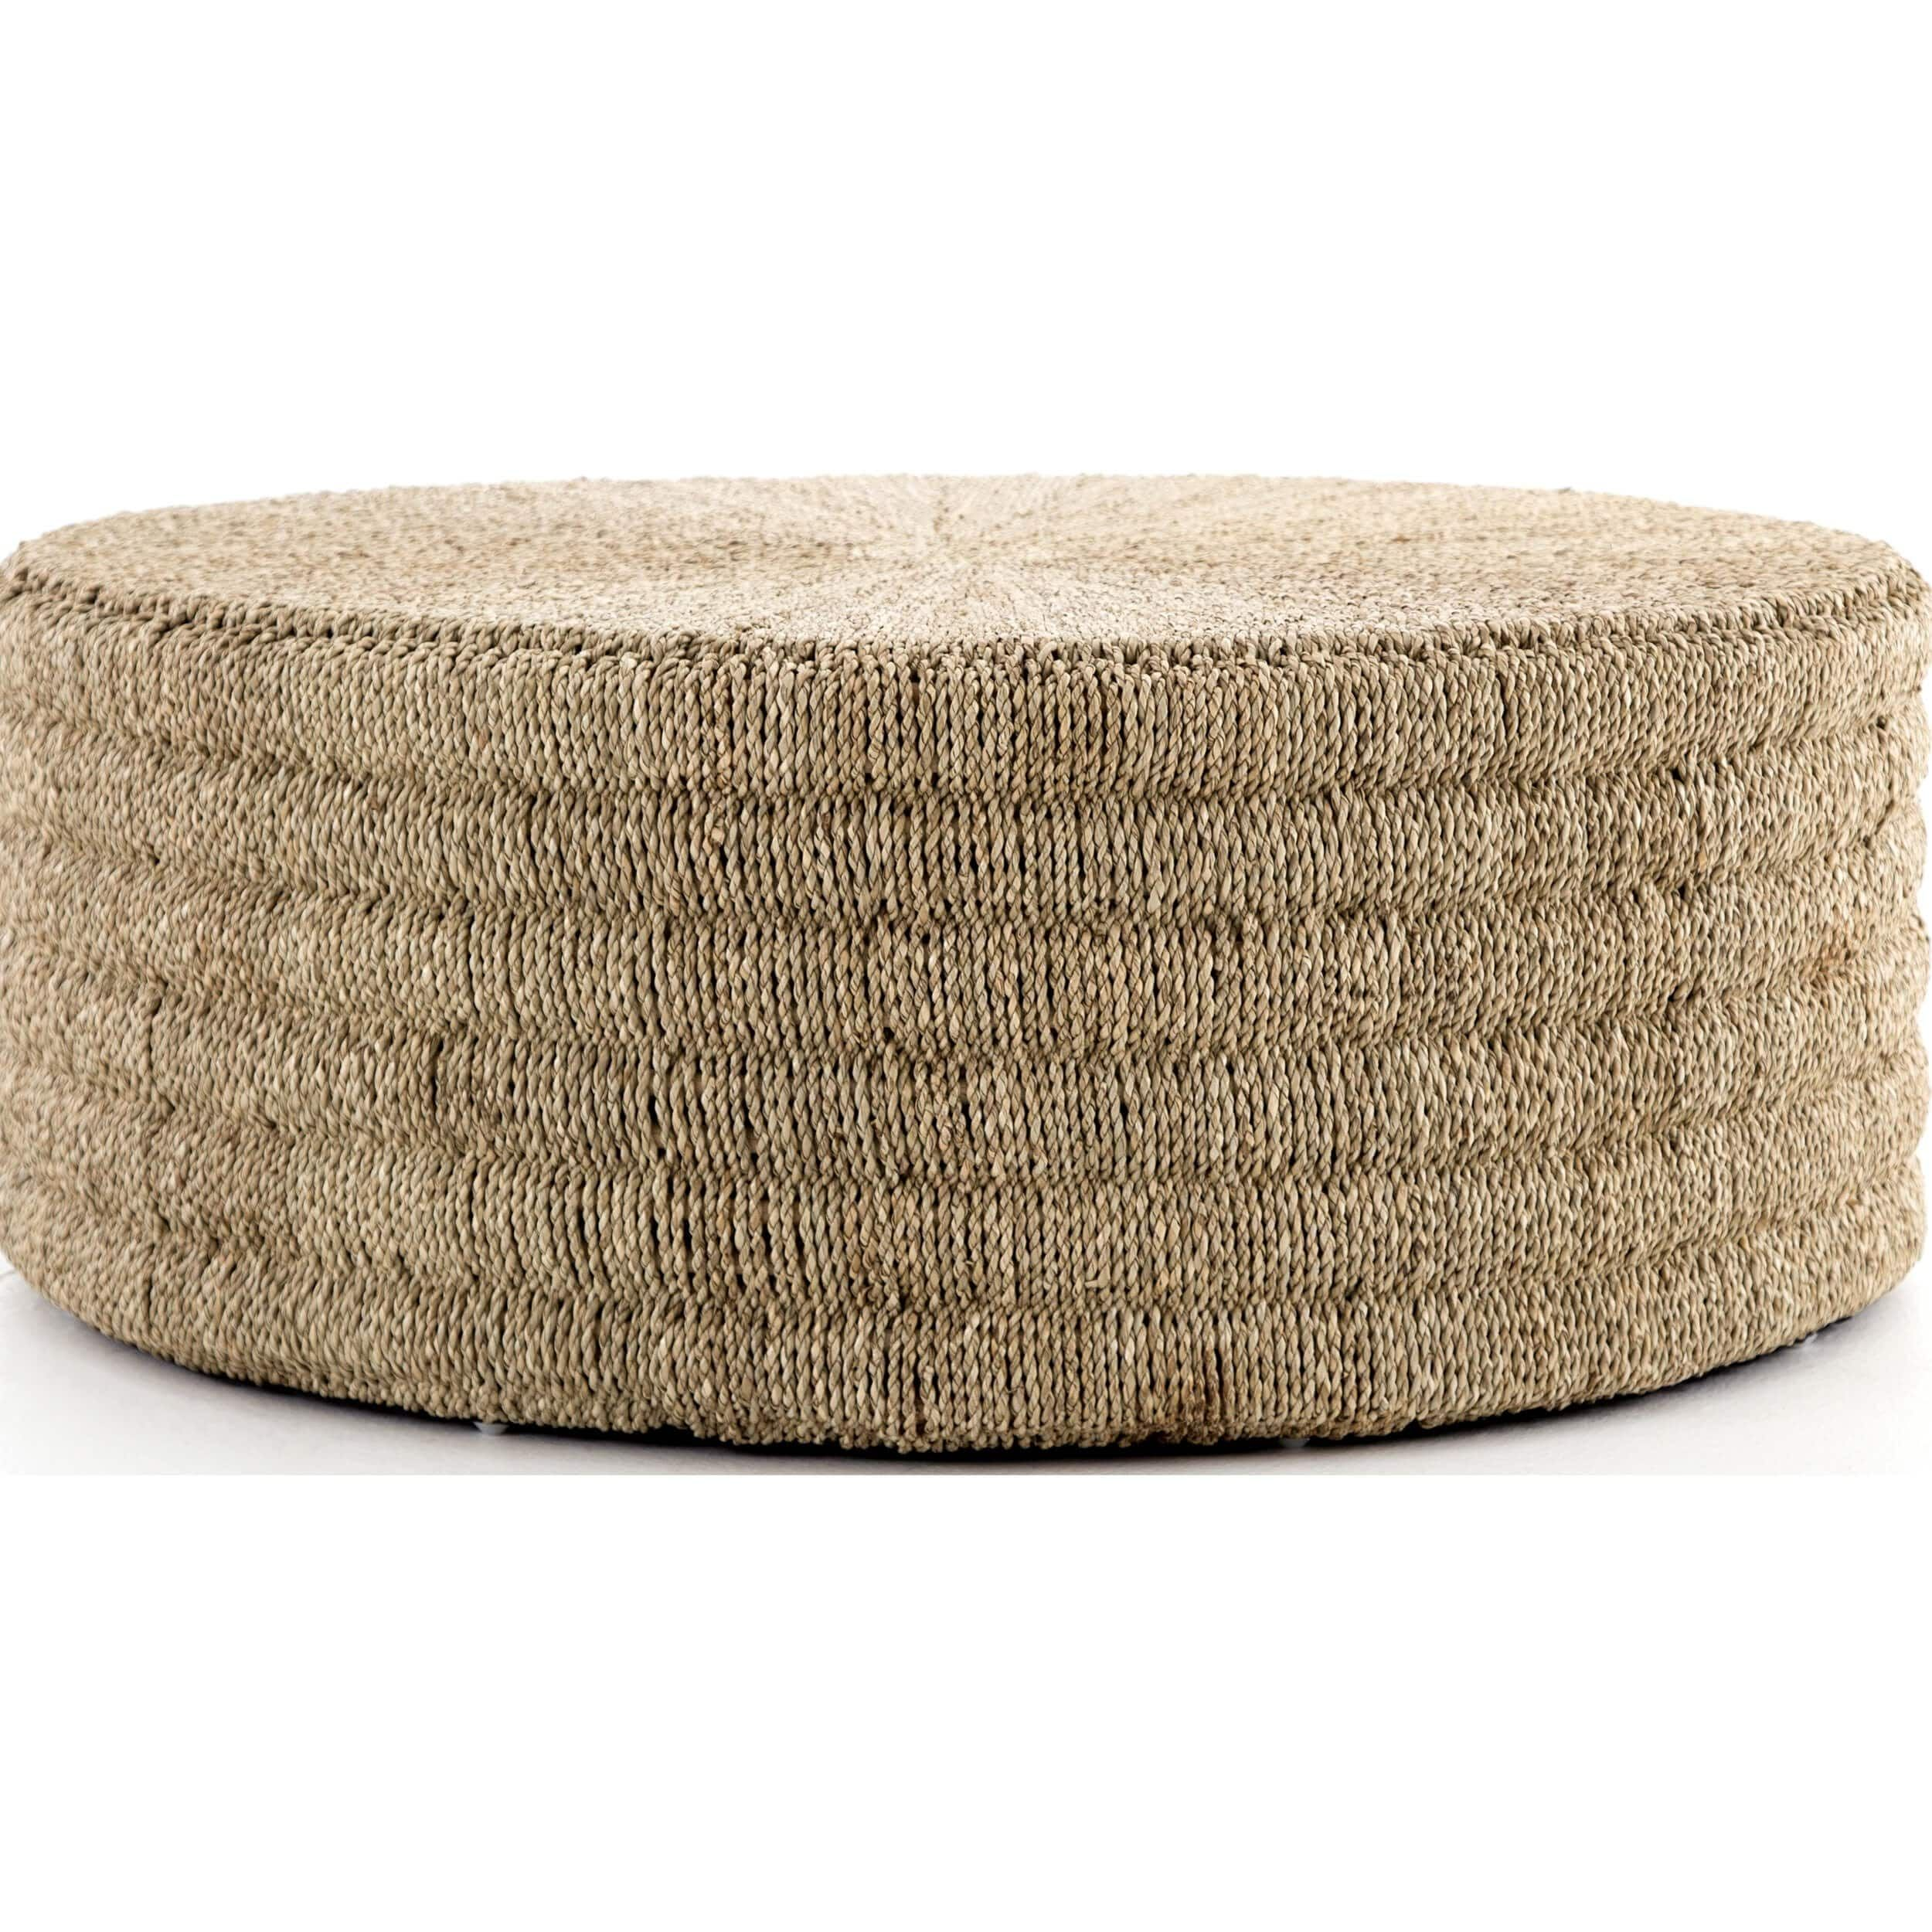 Pascal Coffee Table Light Natural Coffee Table Hanging Furniture Cottage Style Furniture [ 2500 x 2500 Pixel ]